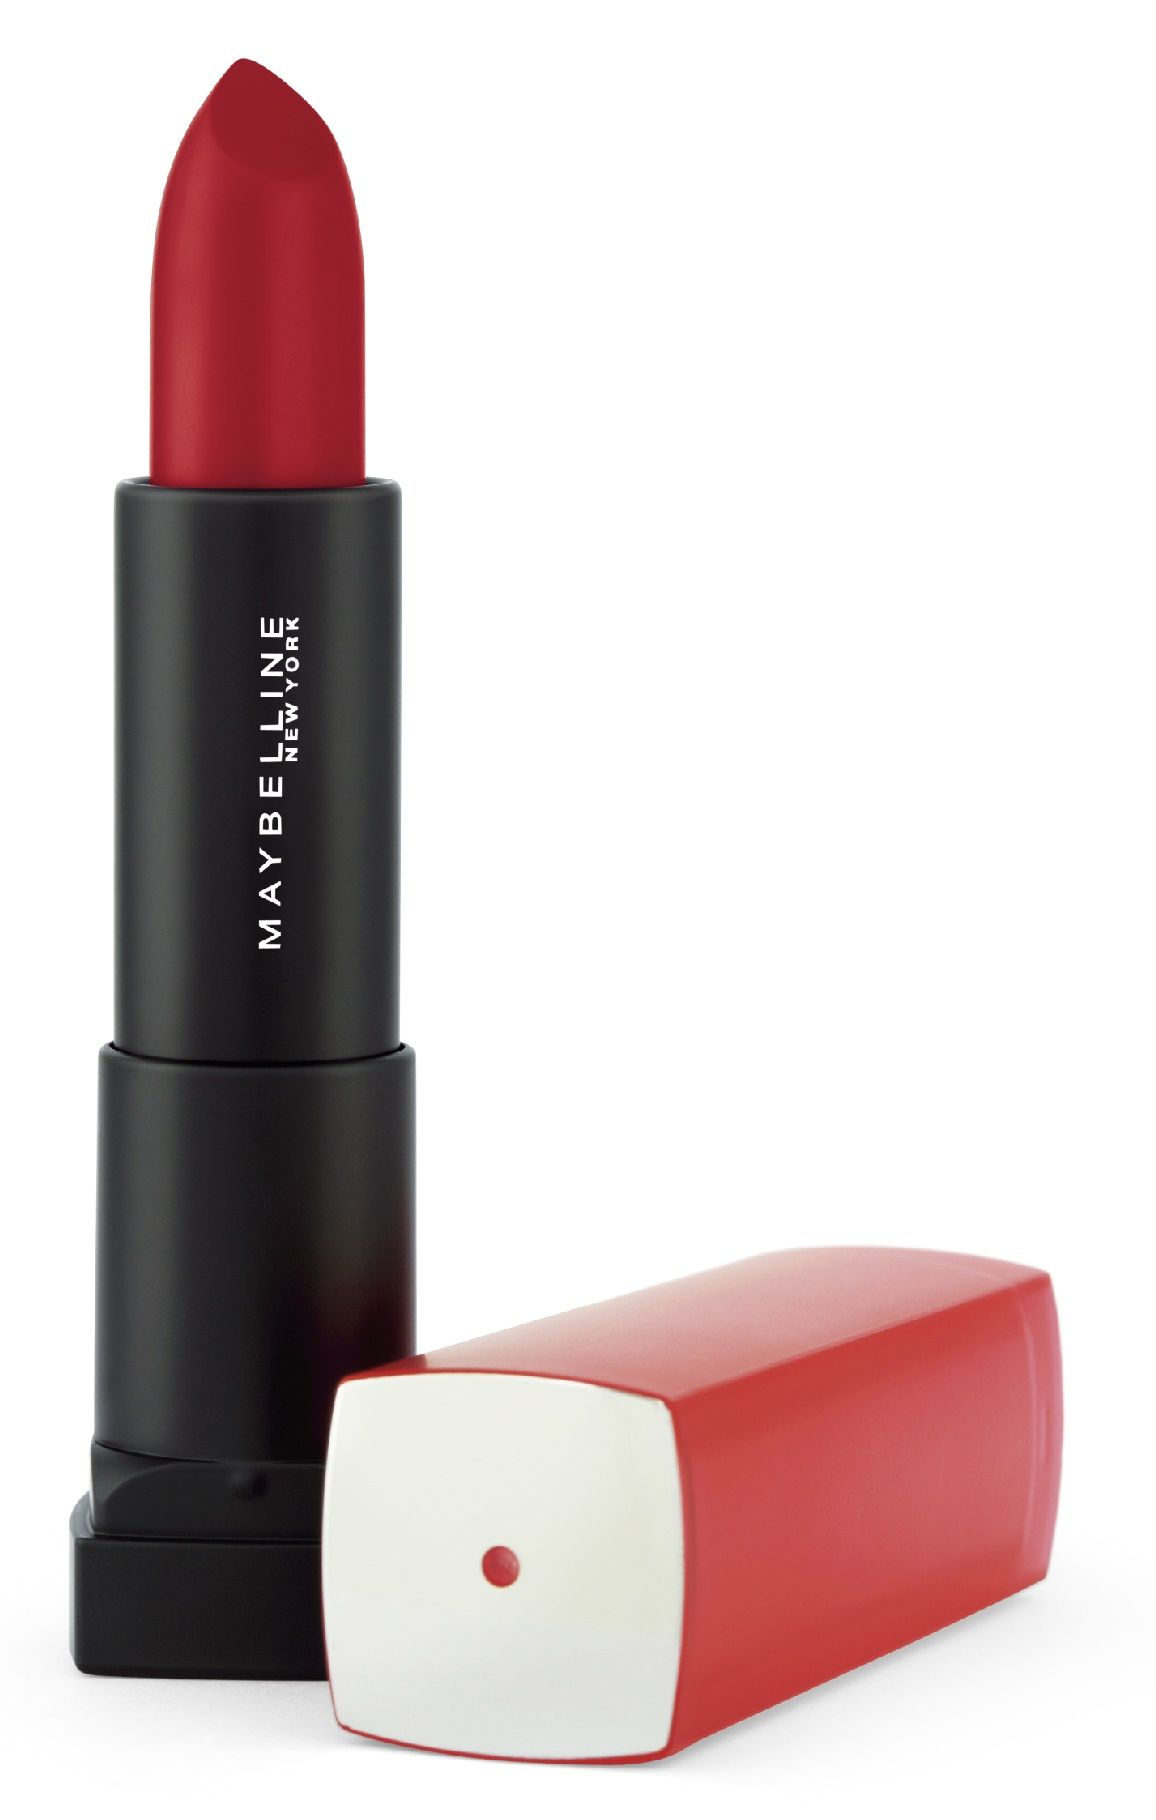 Maybelline Color Sensational Vivid Matte Lipstick